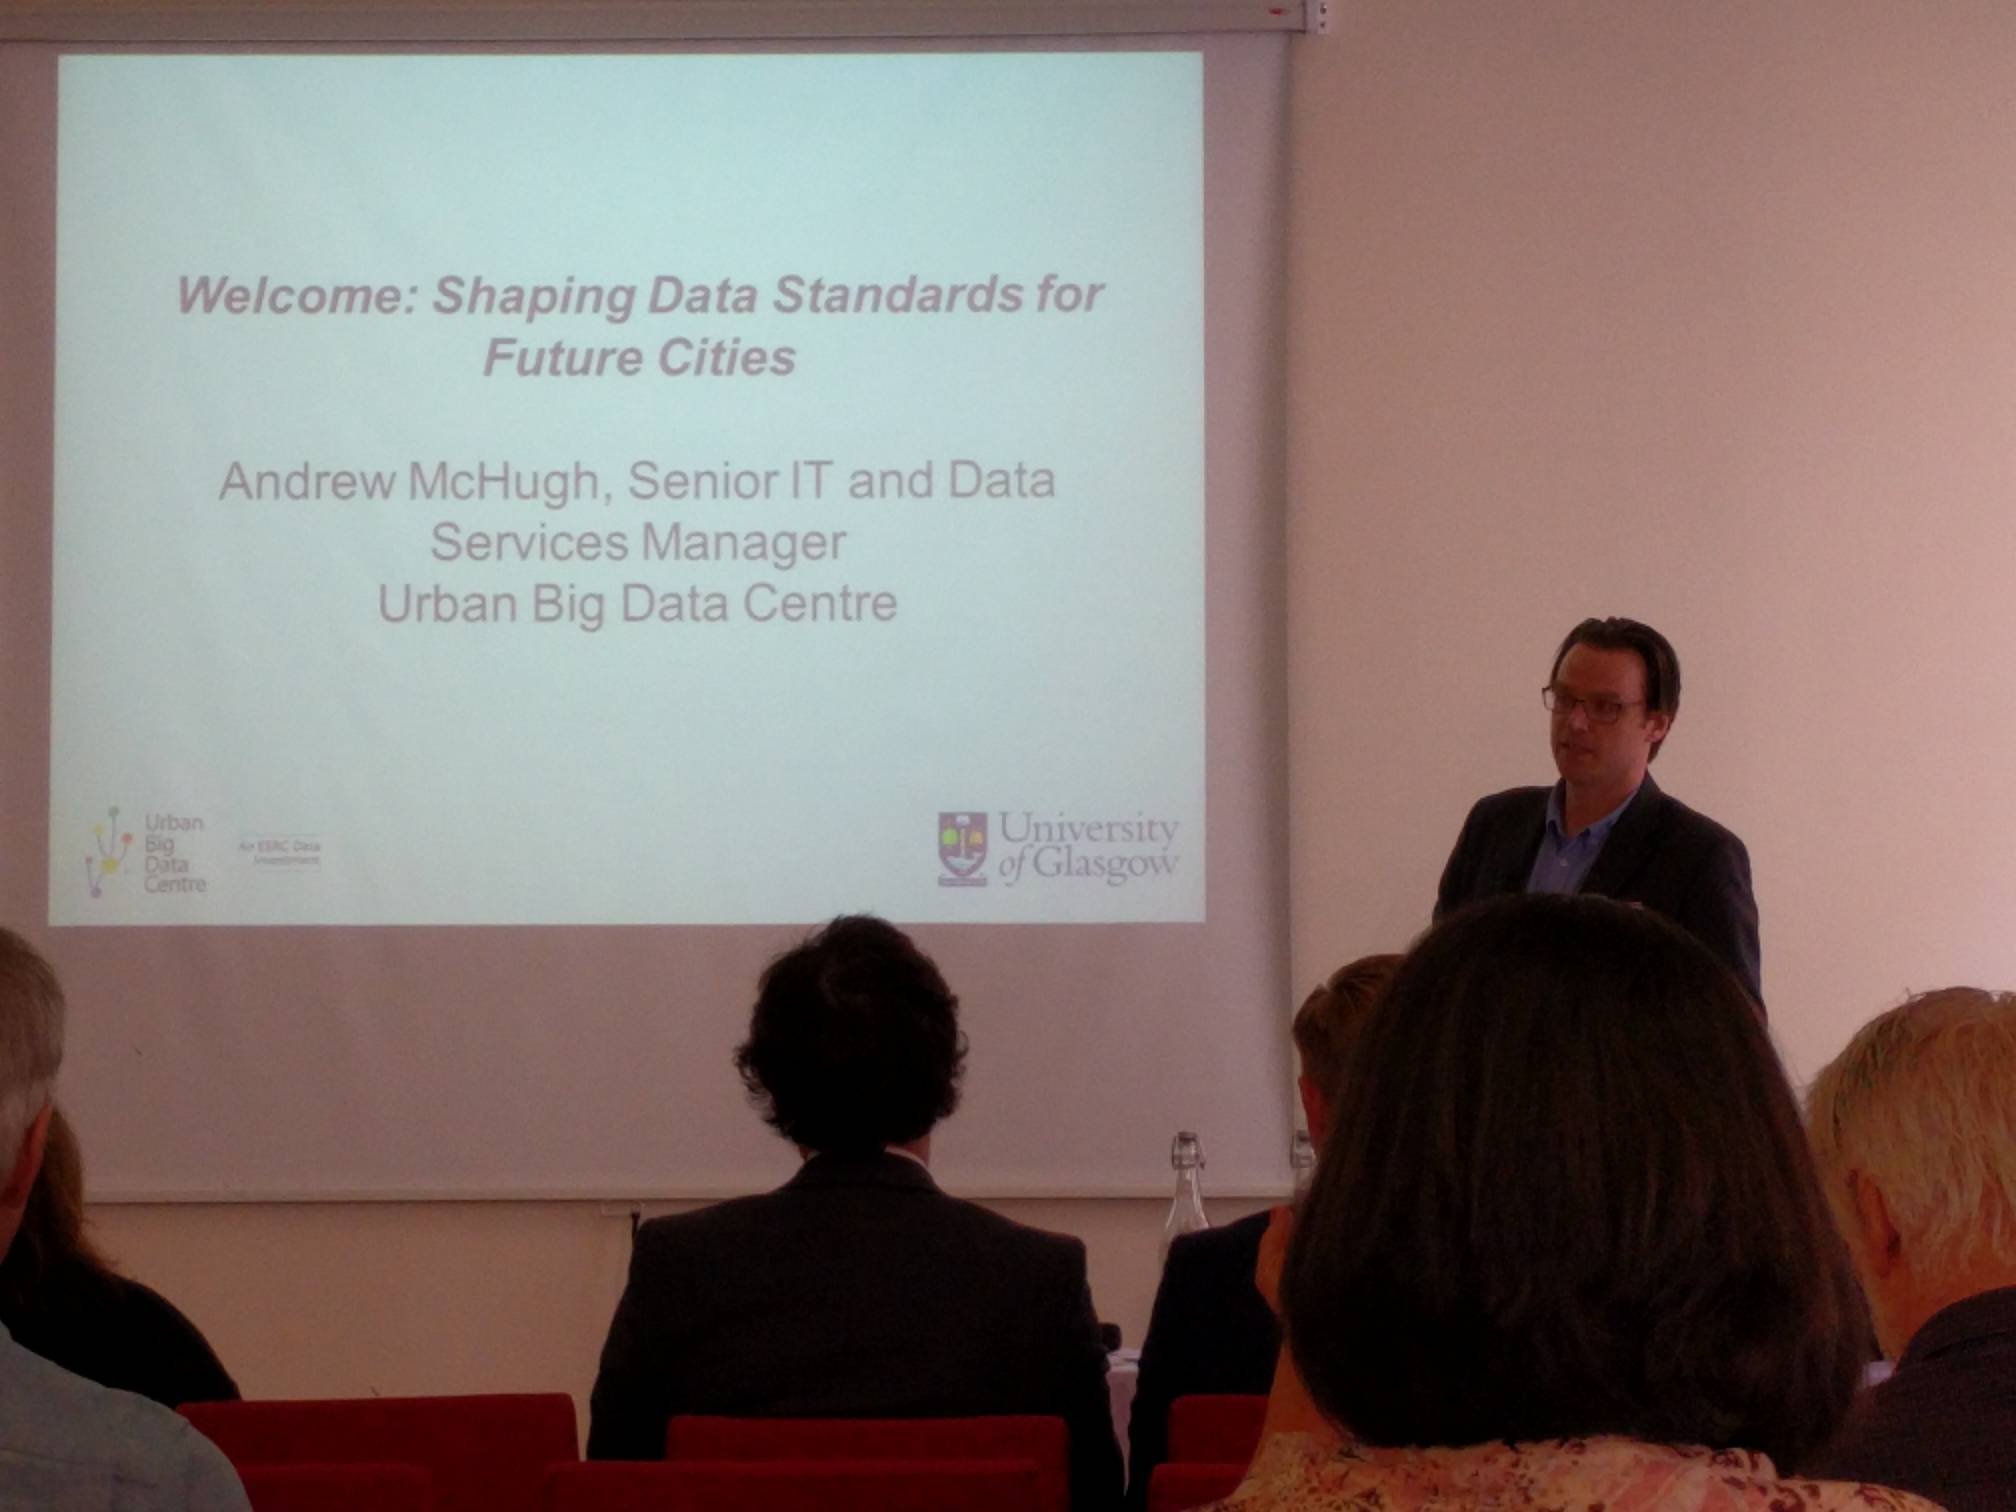 Our Andrew McHugh opens our Shaping Data Standards for Future Cities event. #DSFC17 to follow the conversations https://t.co/2glcE0ppB7